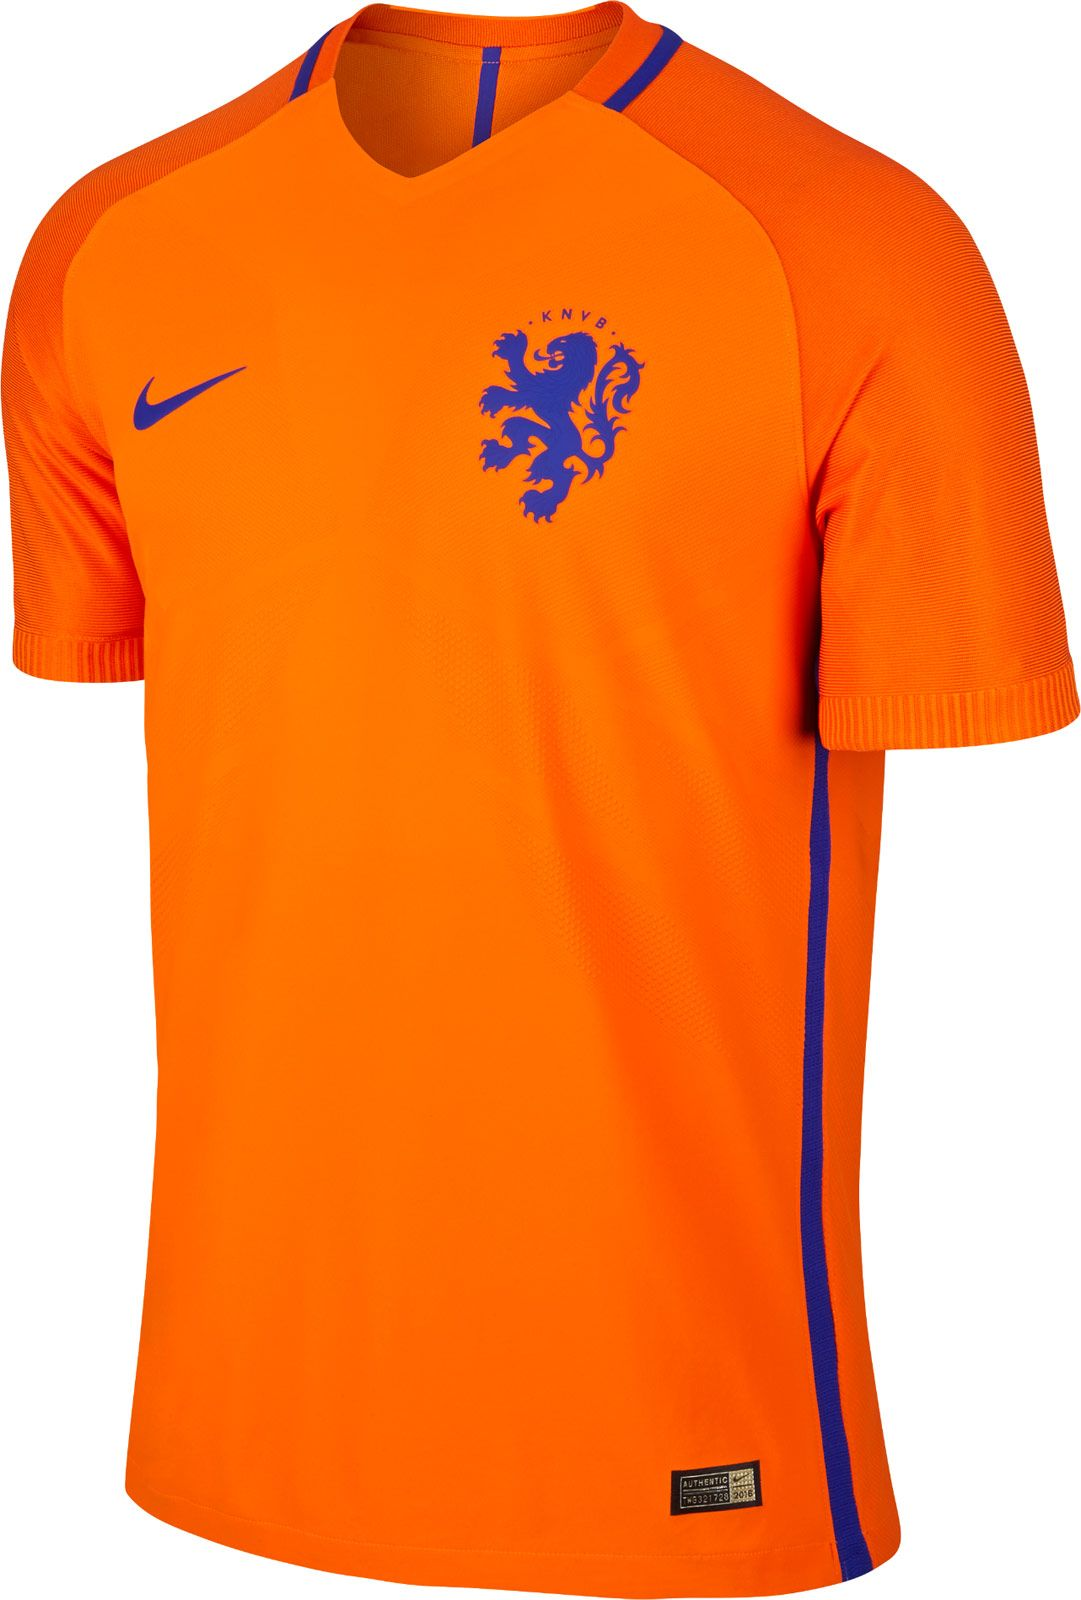 Netherlands 2016 Home Kit Released Nike Football a4343dc305eb9